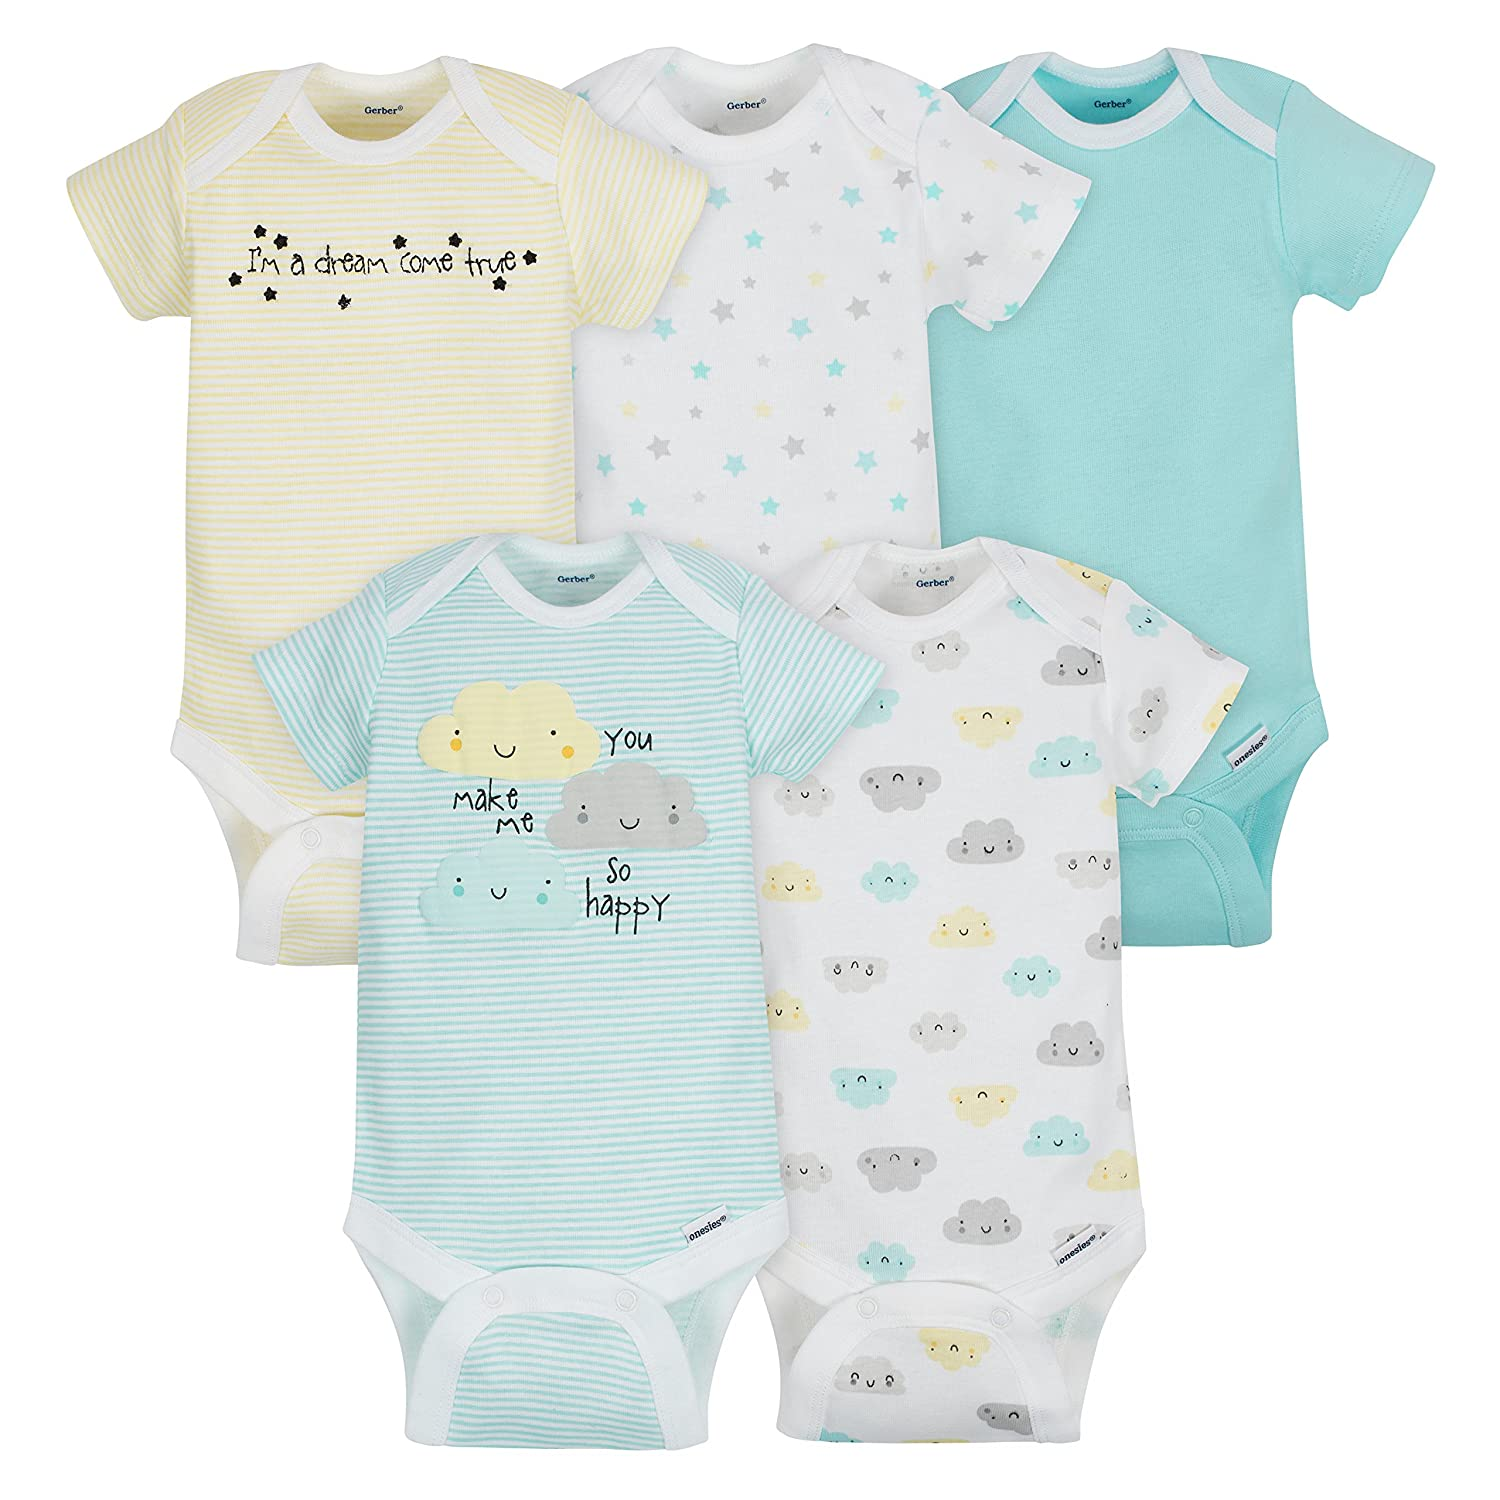 ee0bf933e5 Amazon.com  Gerber Baby 5 Pack Onesies  Clothing